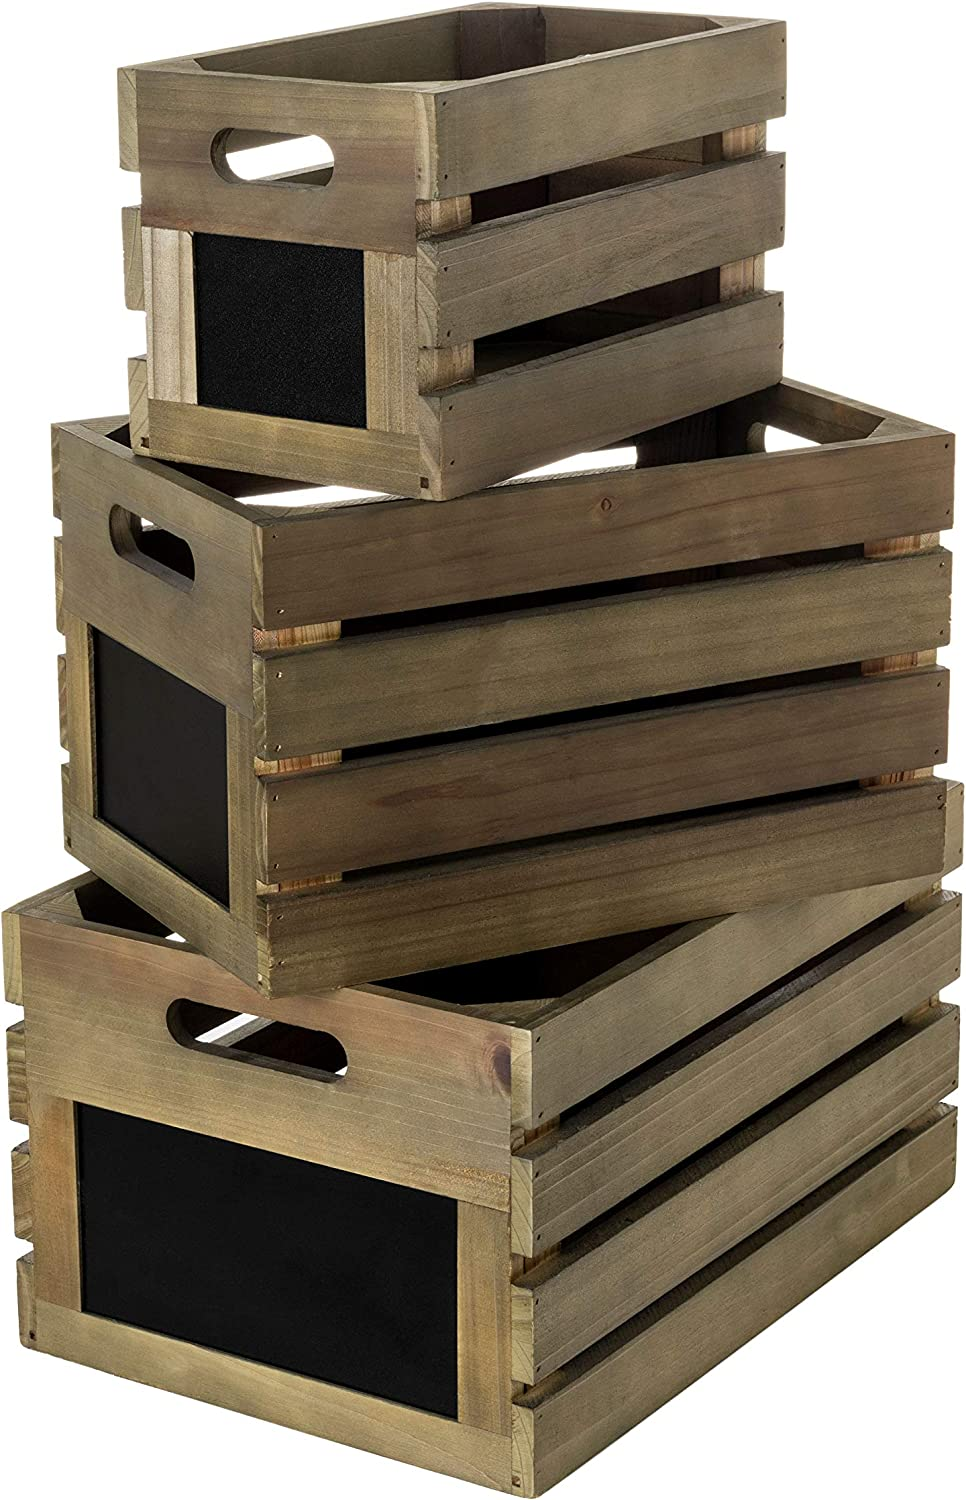 Strova Nesting Wood Crates with Chalkboard Display, Set of 3, Rustic Farmhouse Home Organization and Decor, Store Vinyl LP Records, Books, Supplies, and More